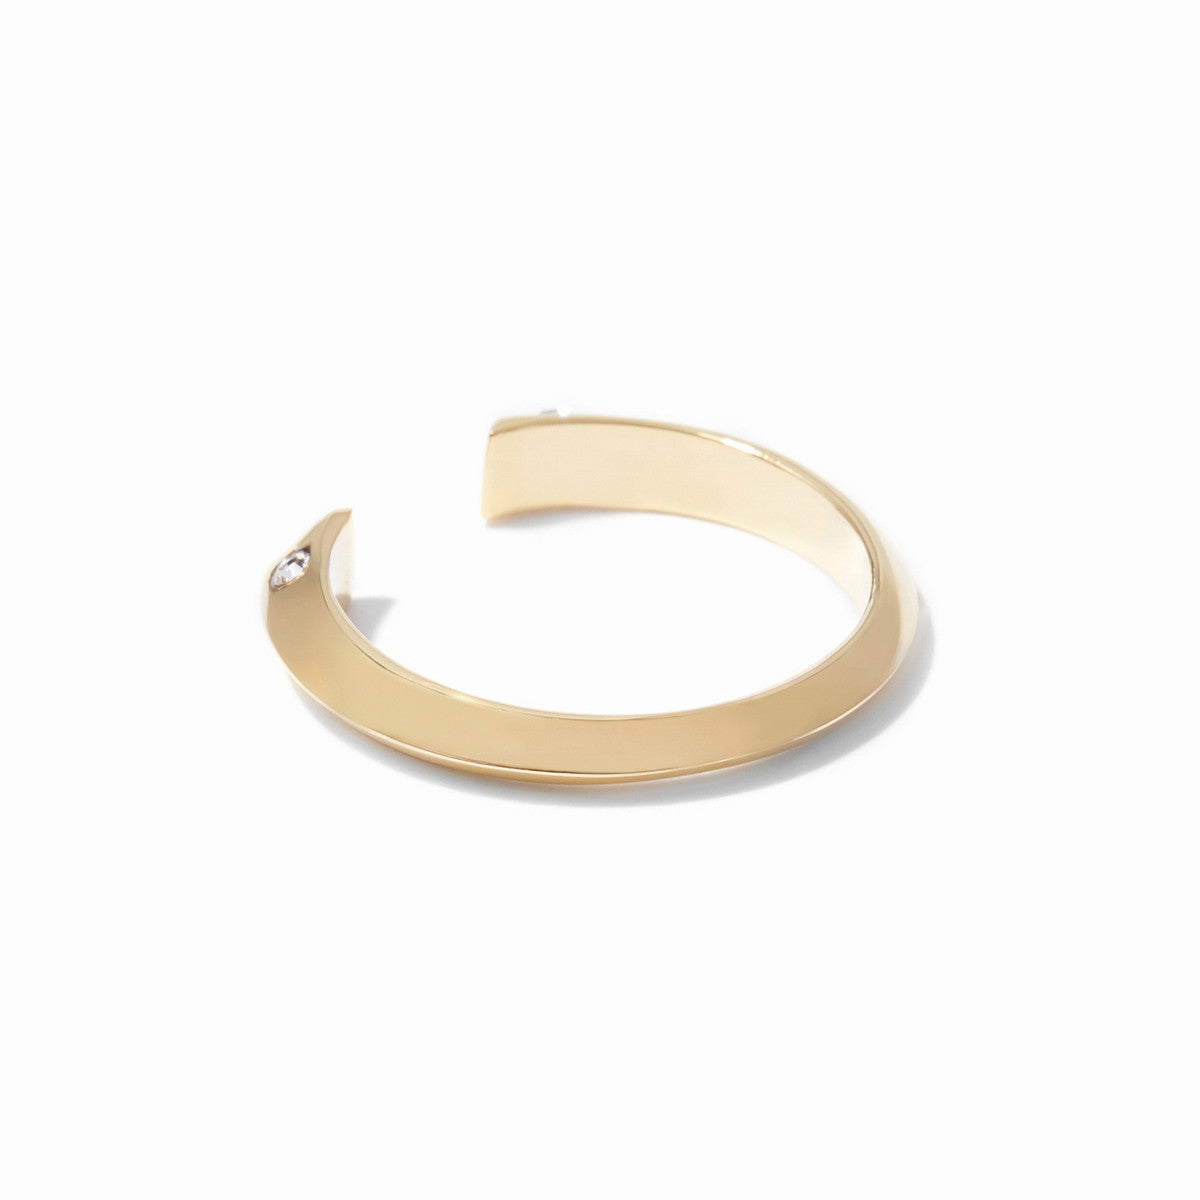 Cira Angled Ring - Gold